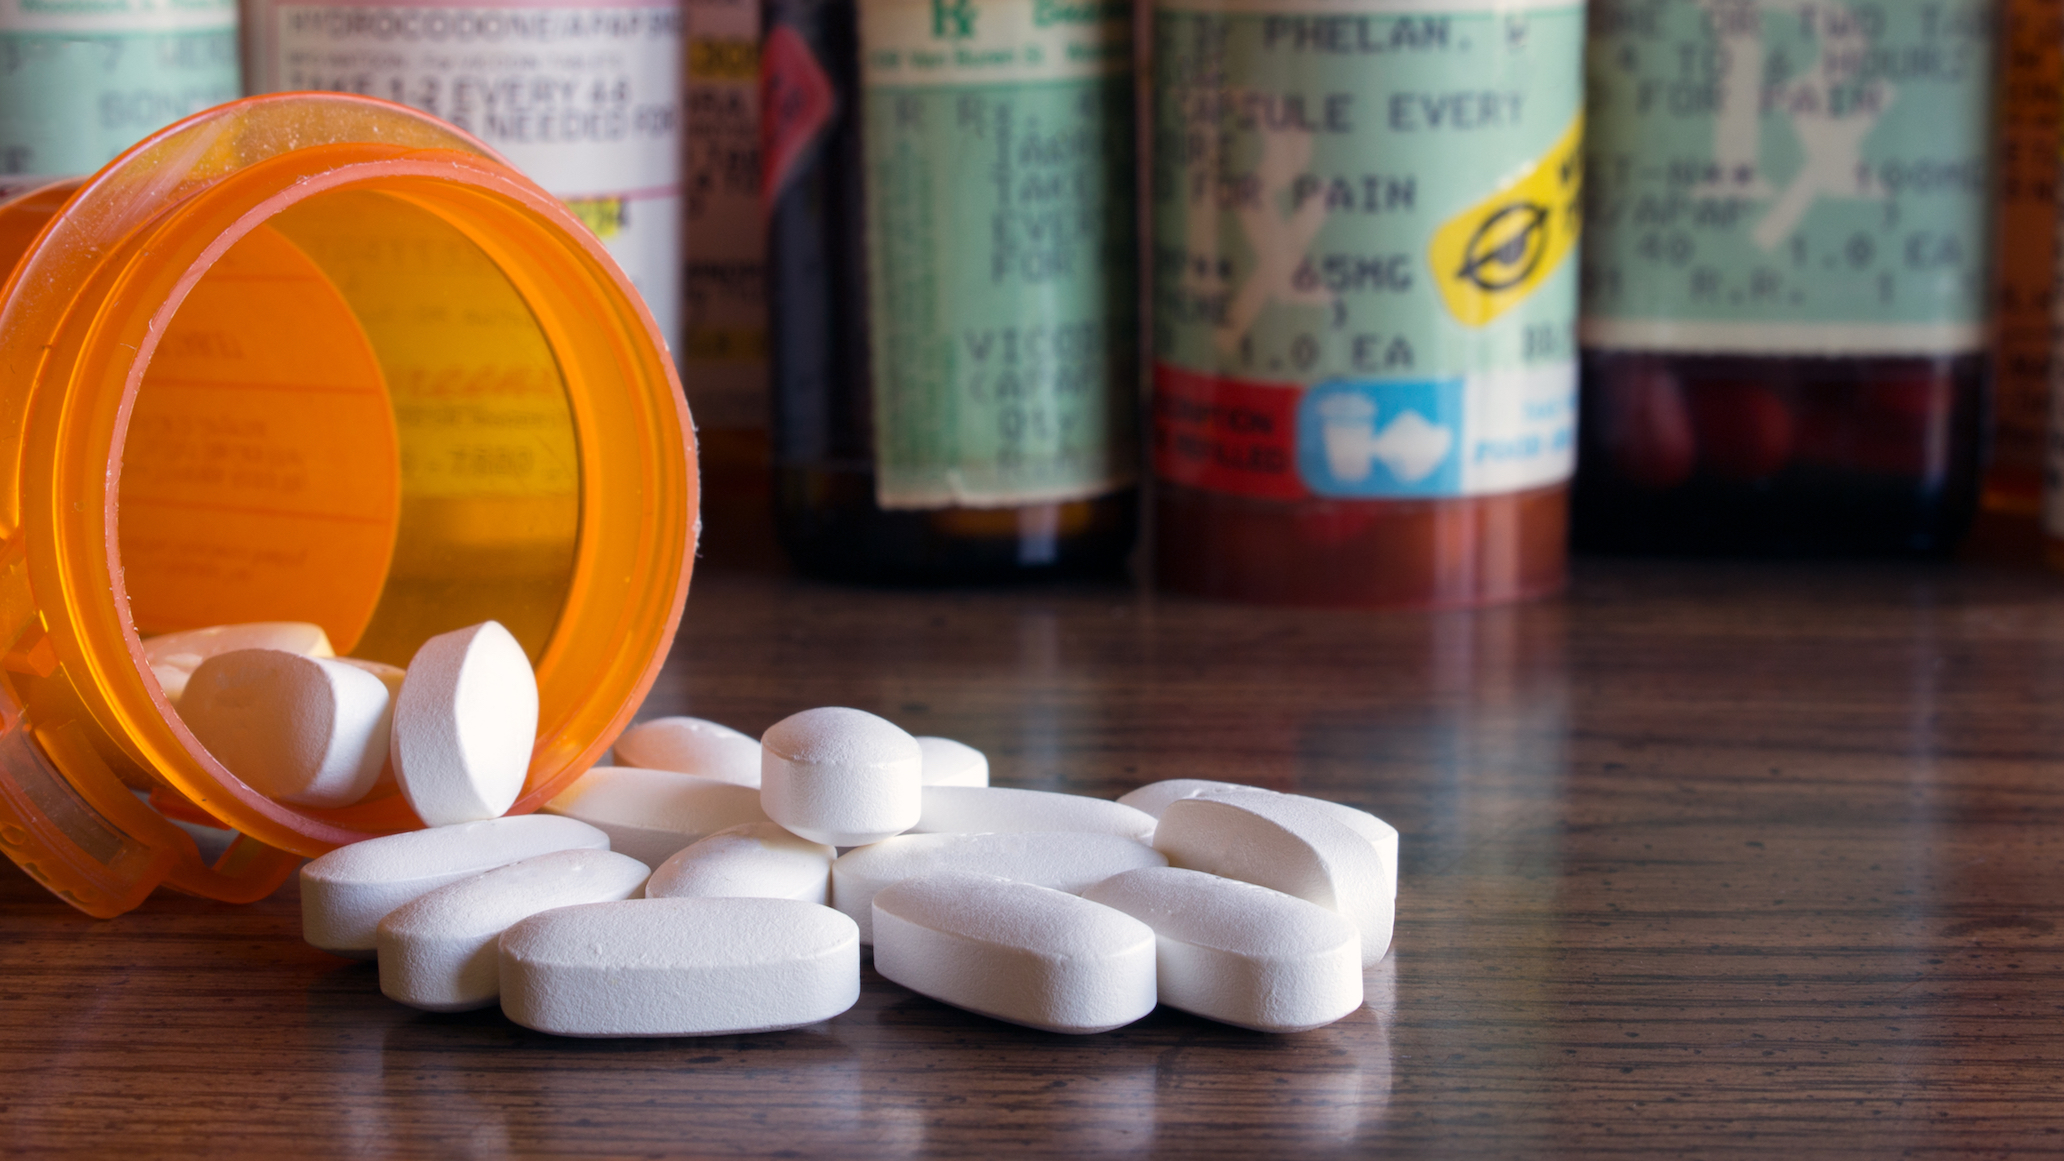 A study led by St. Michael's Hospital in Toronto has found that one out of every five deaths among young adults in the United States can be attributed to opioids.